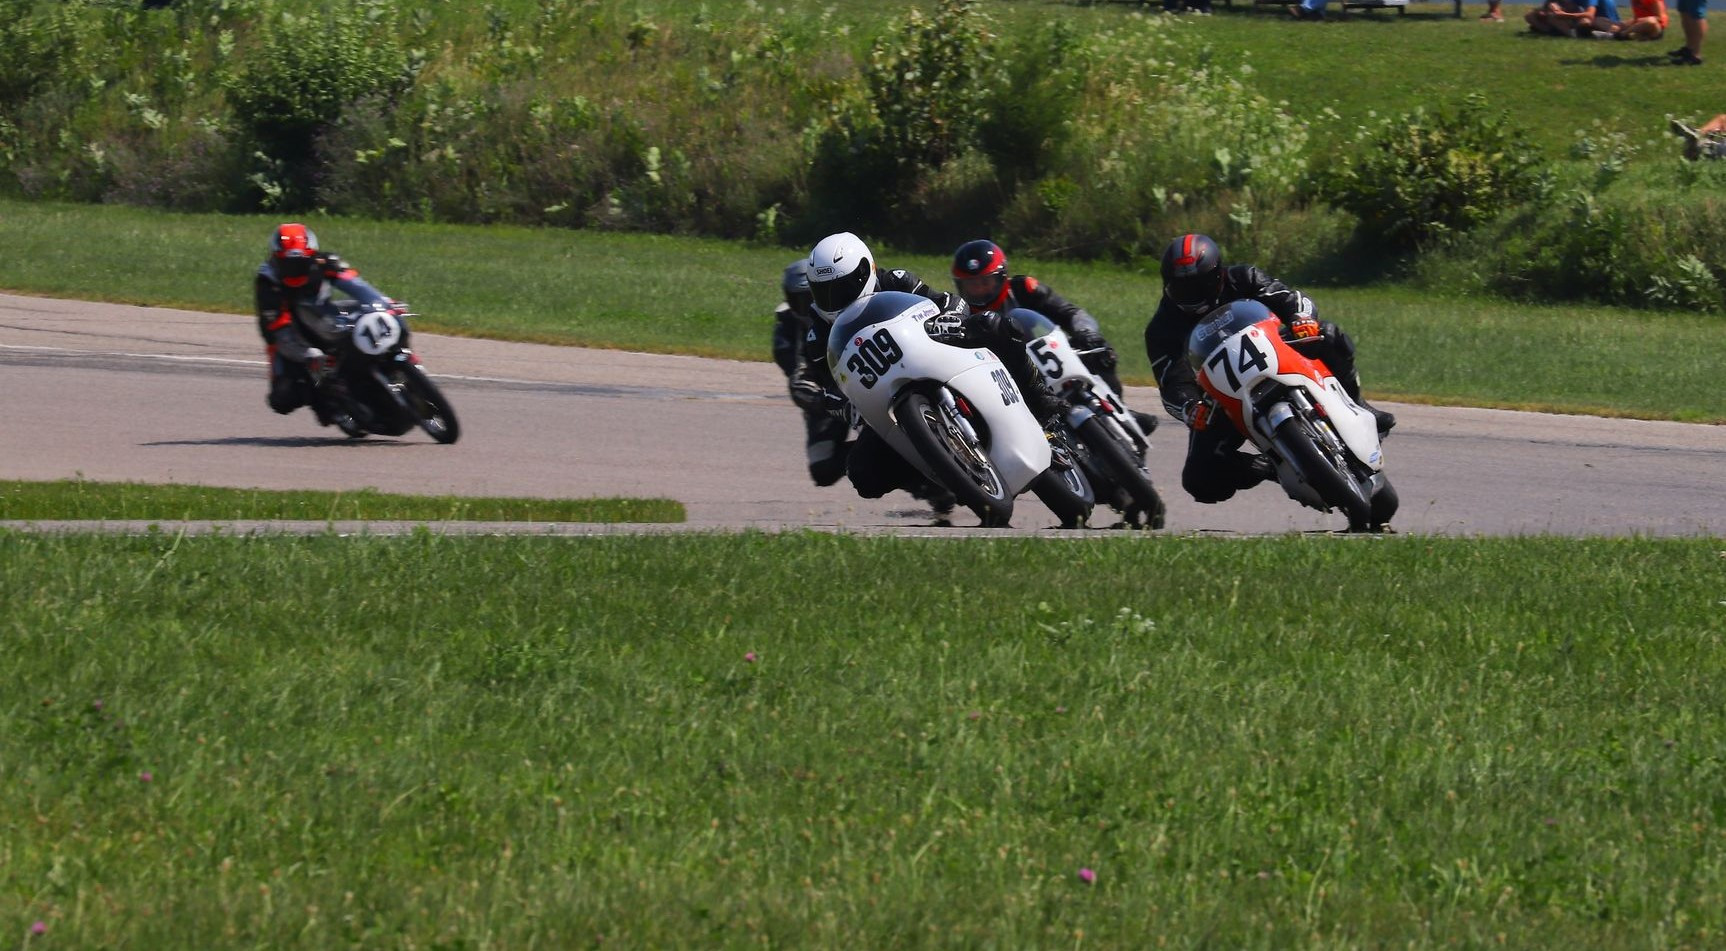 Tim Joyce (309), Wes Orloff (74), Andrew Mauk (X95, behind Joyce), and Brian Larrabure (14) at the start of an AHRMA Vintage Cup race at Gingerman Raceway. Photo by etechphoto.com, courtesy AHRMA.